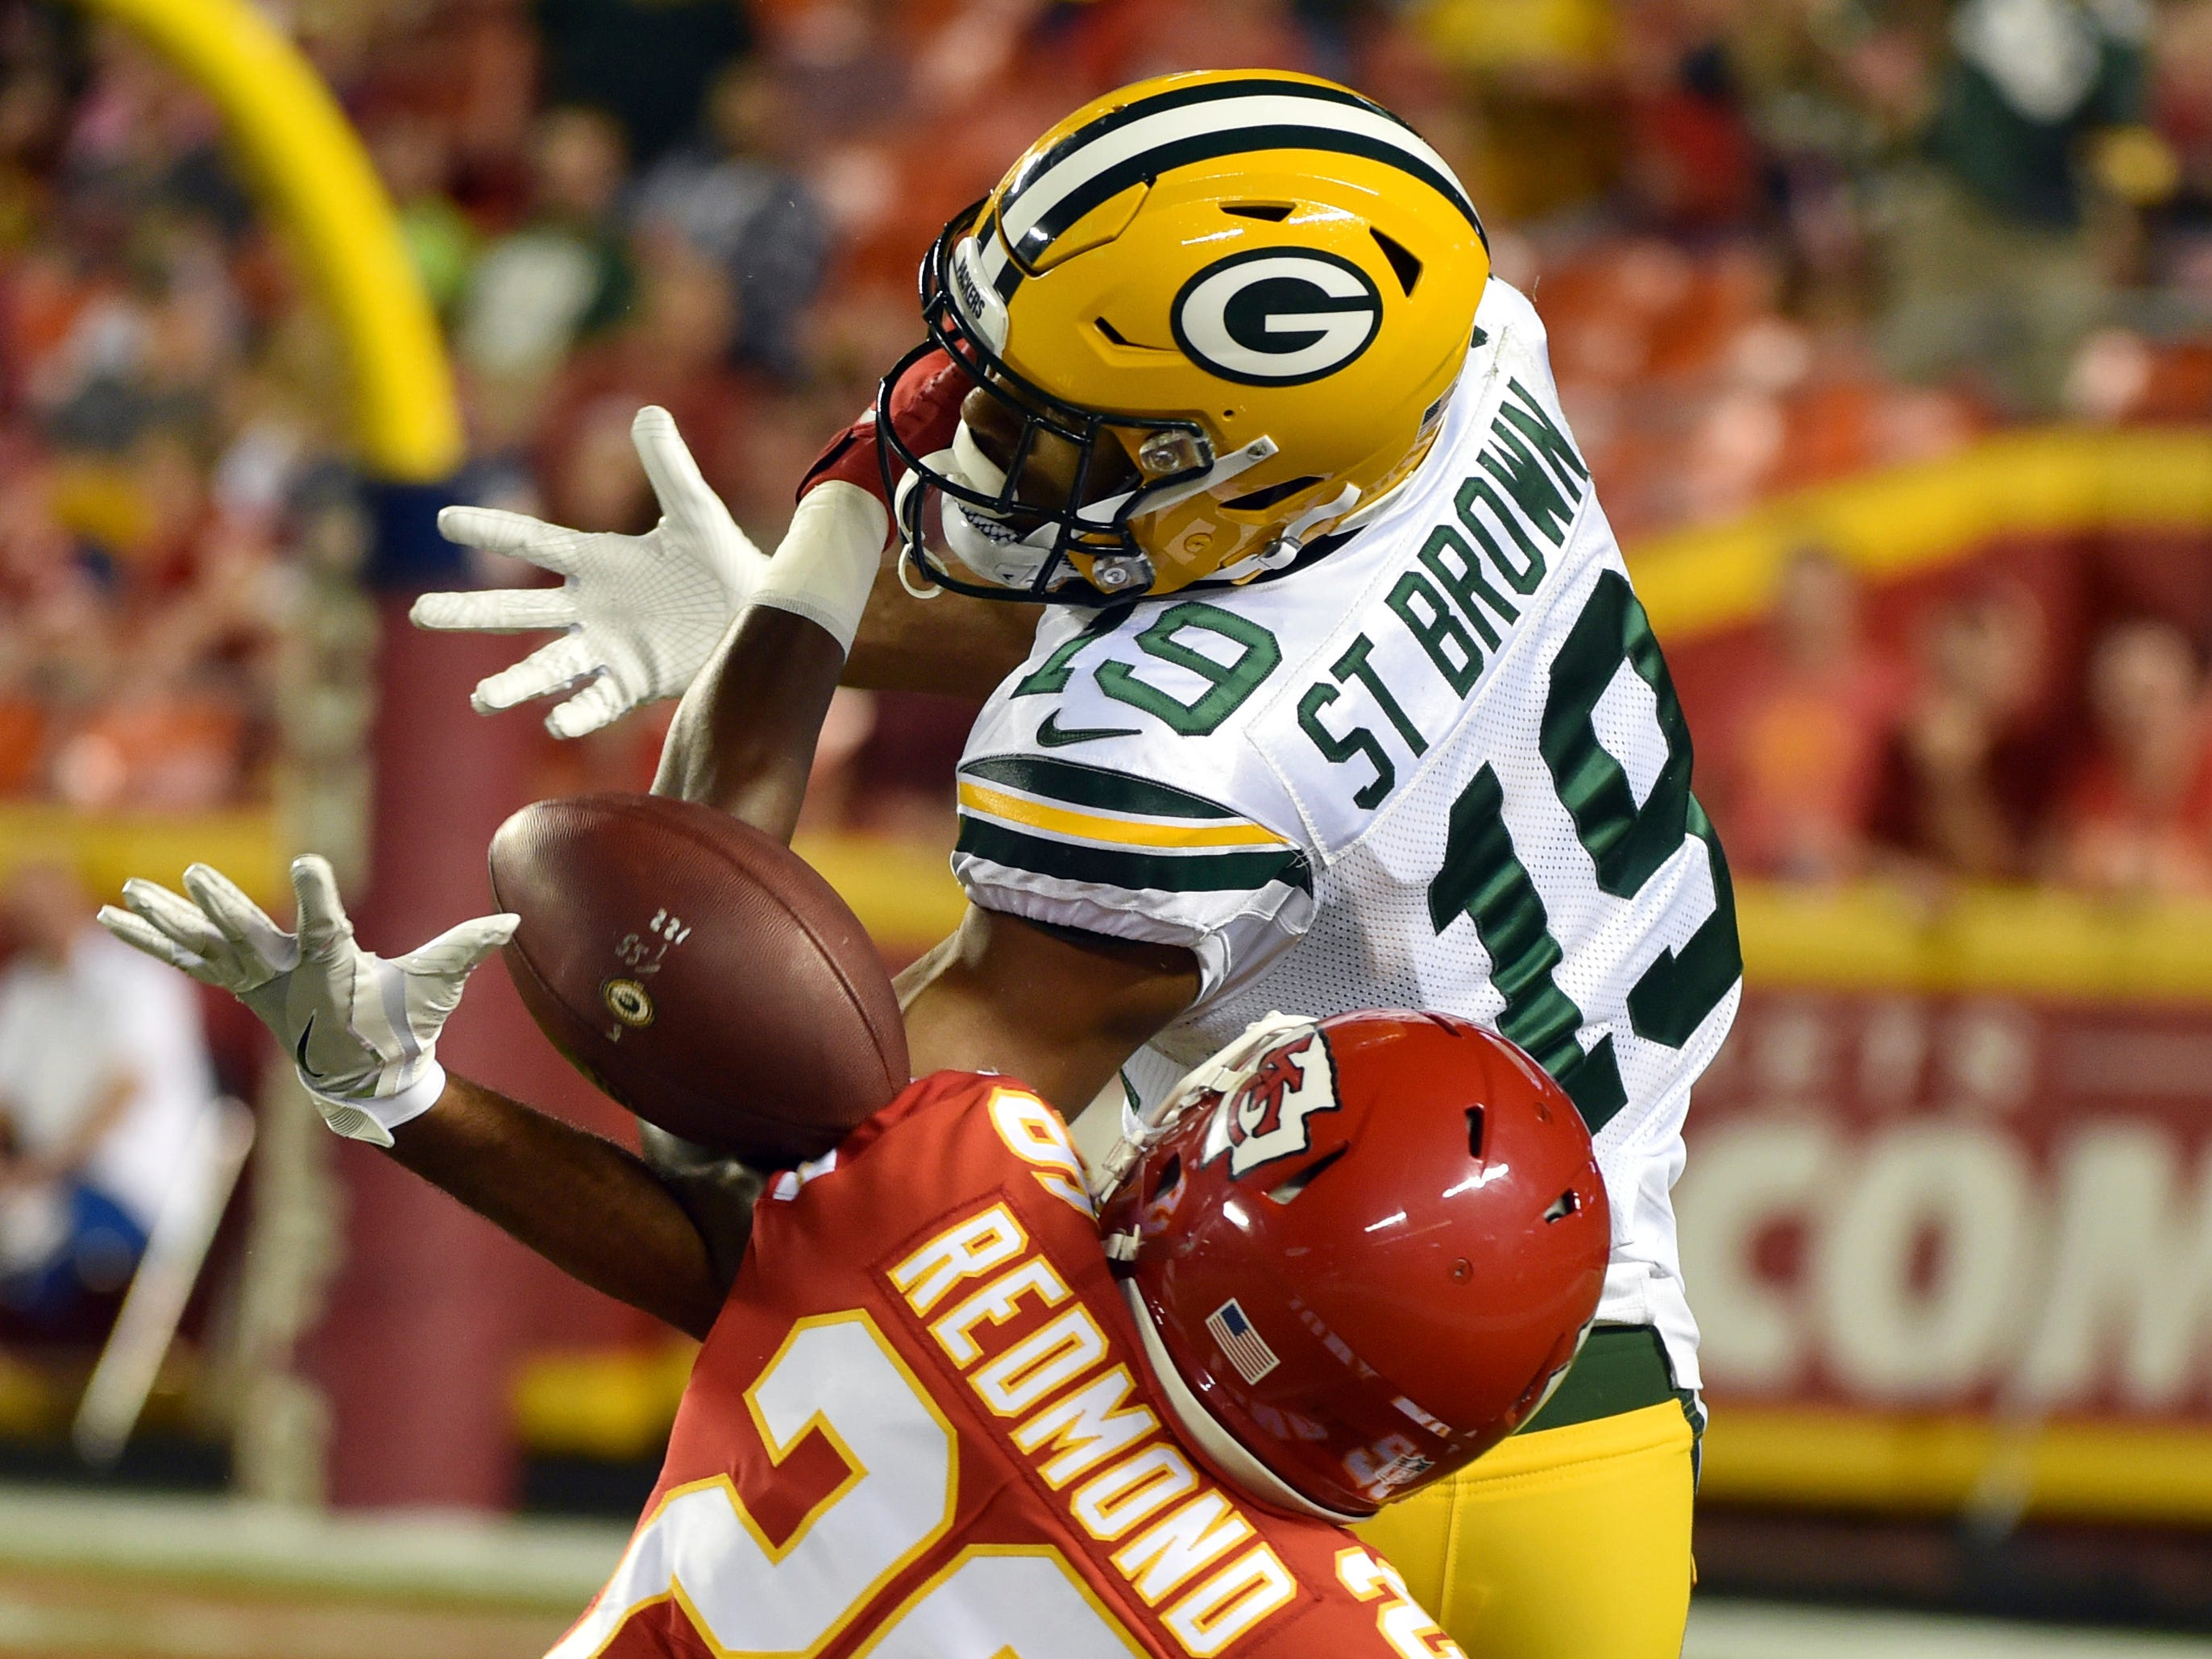 Kansas City Chiefs cornerback Will Redmond (26) breaks up a pass intended for Green Bay Packers wide receiver Equanimeous St. Brown (19) during the first half of an NFL preseason football game in Kansas City, Mo., Thursday, Aug. 30, 2018.